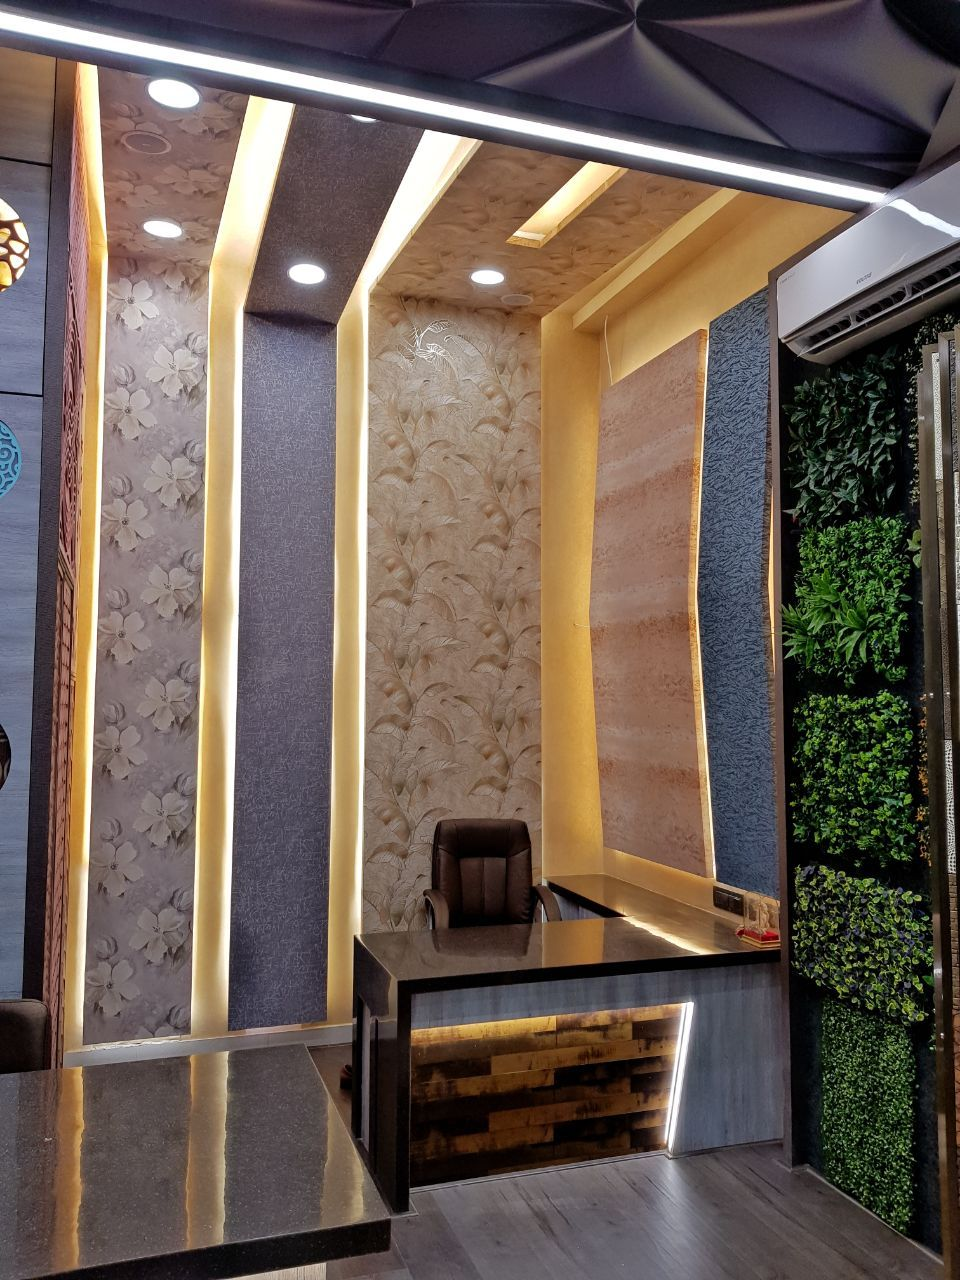 Wallpaper Wall Ambient Backdrop Lighting Showroom Trendy Office